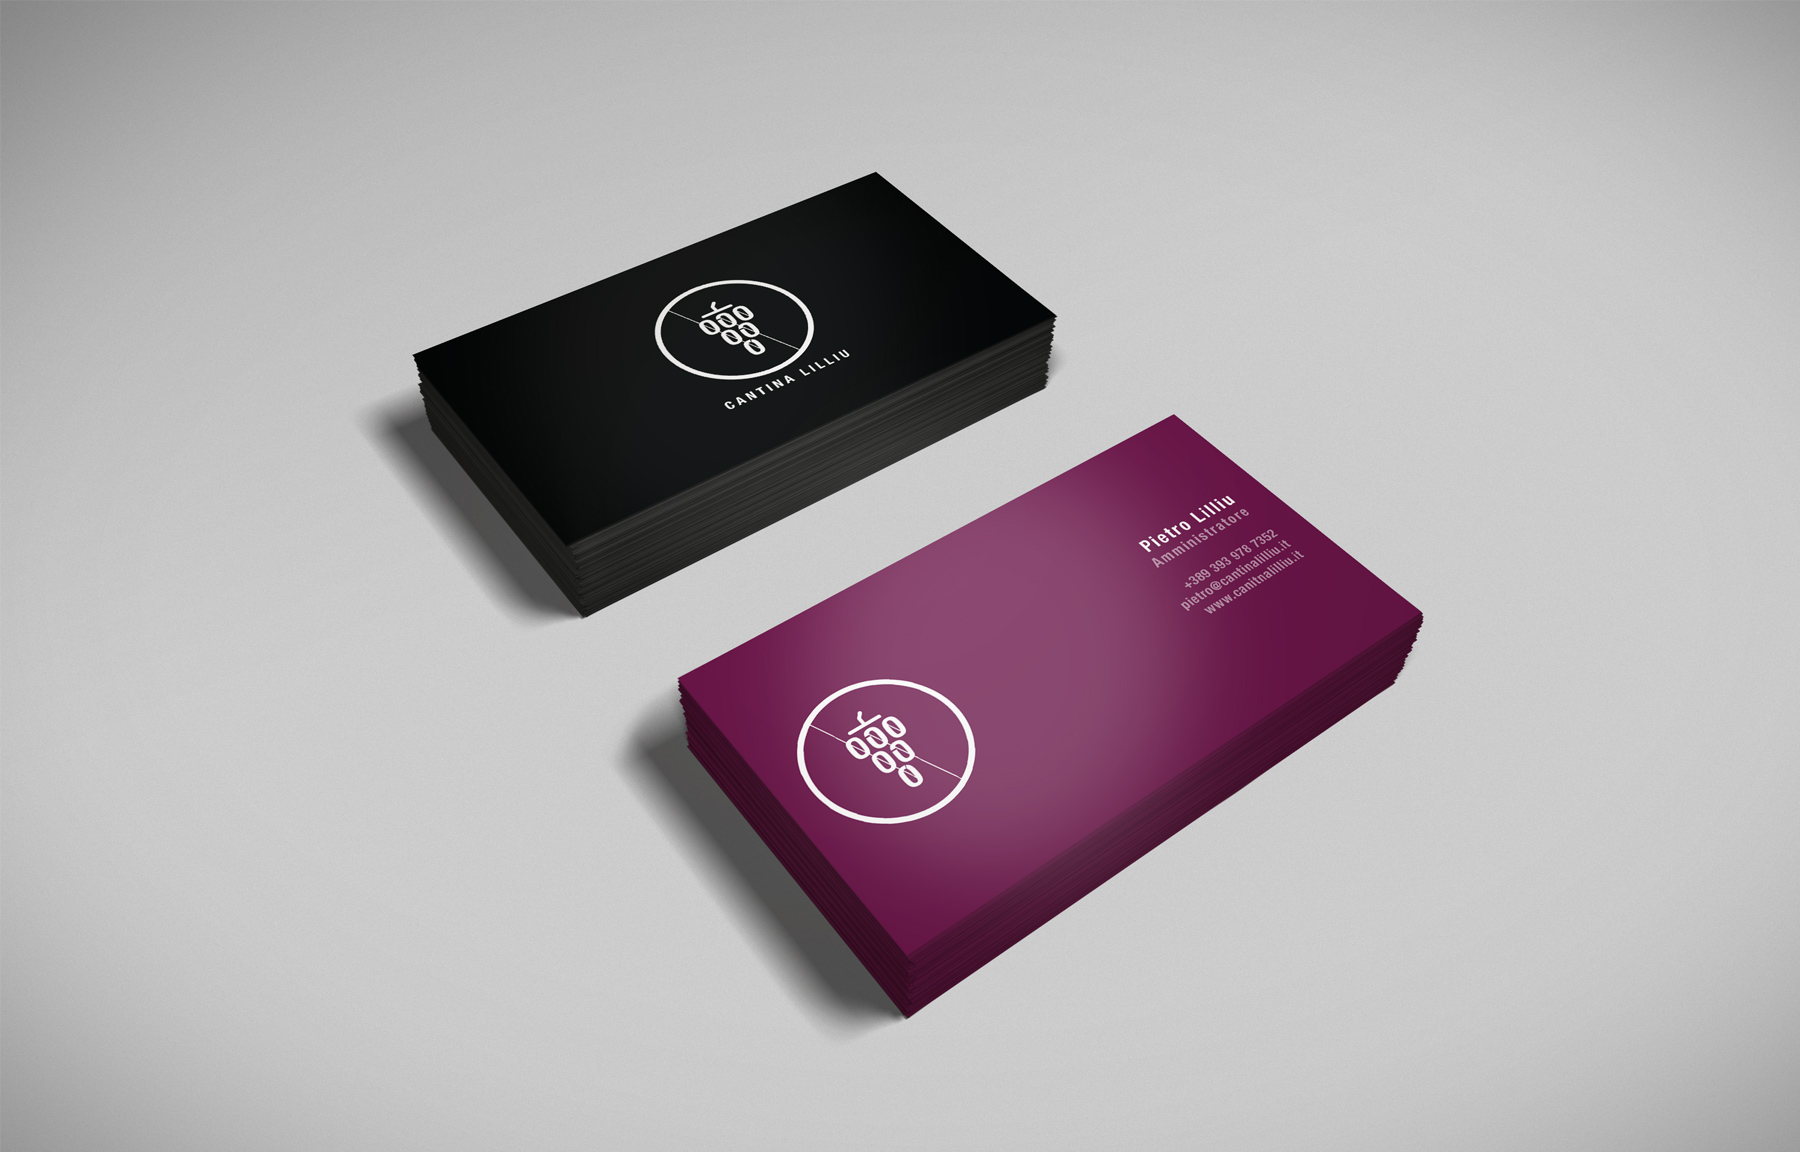 Custom business cards signa cardrabbitcom for Custome business cards